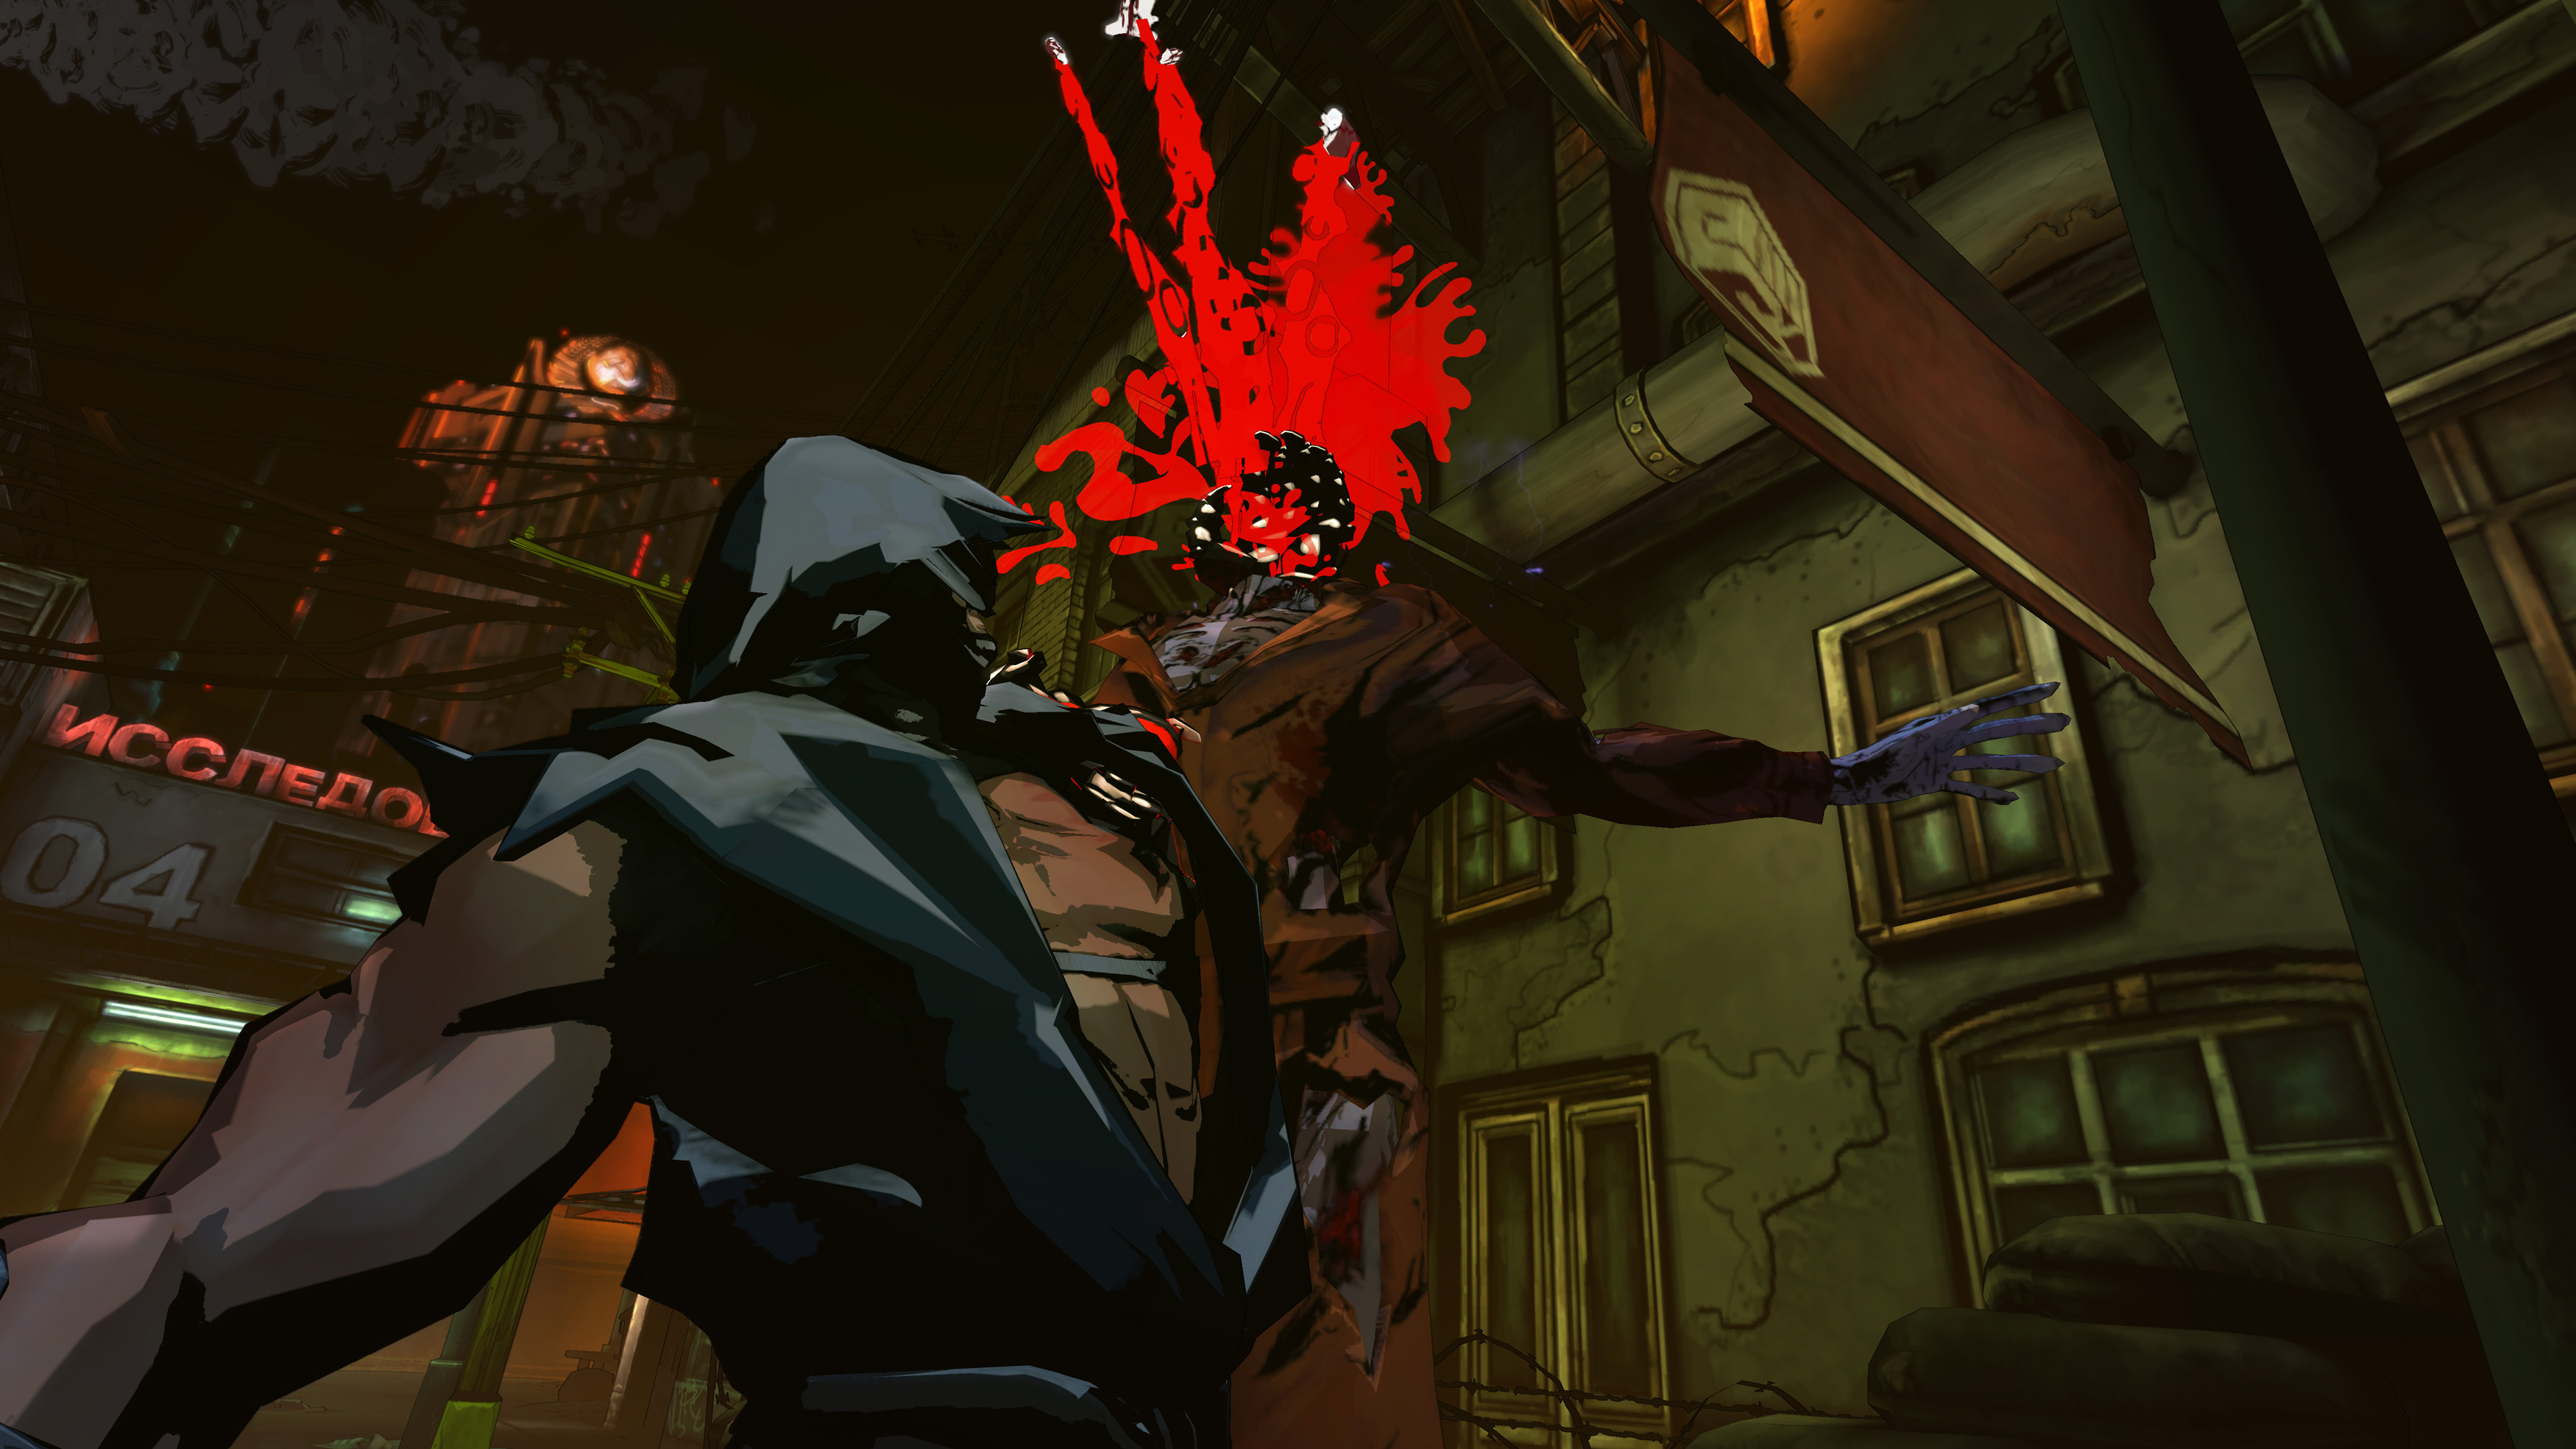 Yaiba To Be Released on Current Gen Consoles